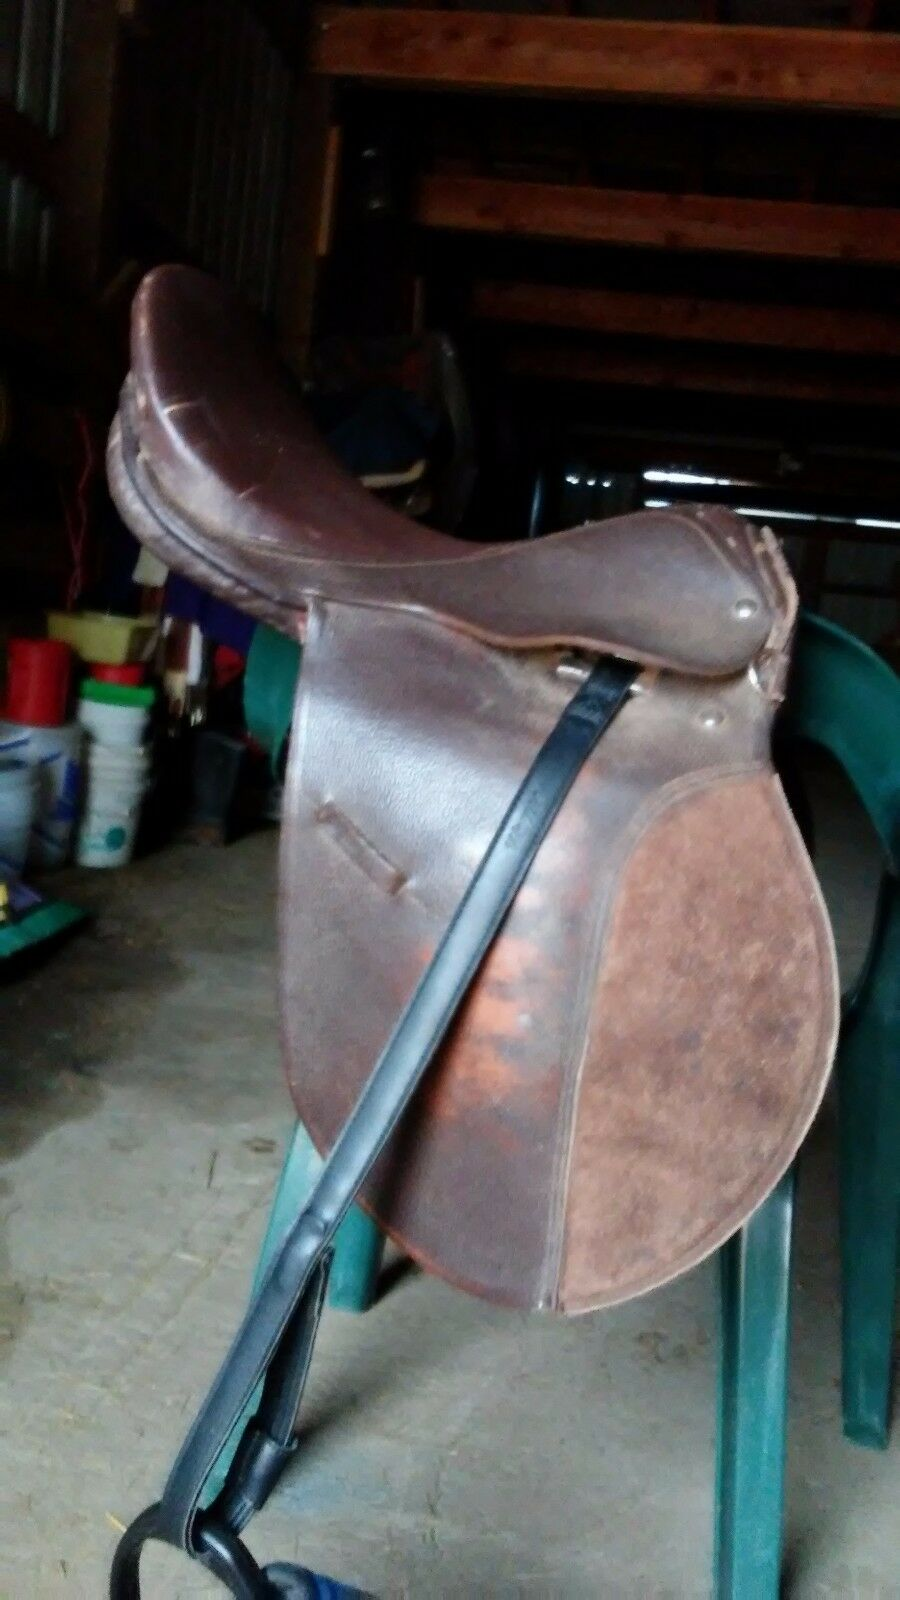 17 english saddle.   Dark brown.  No brand name. Comes with webbers and irons.